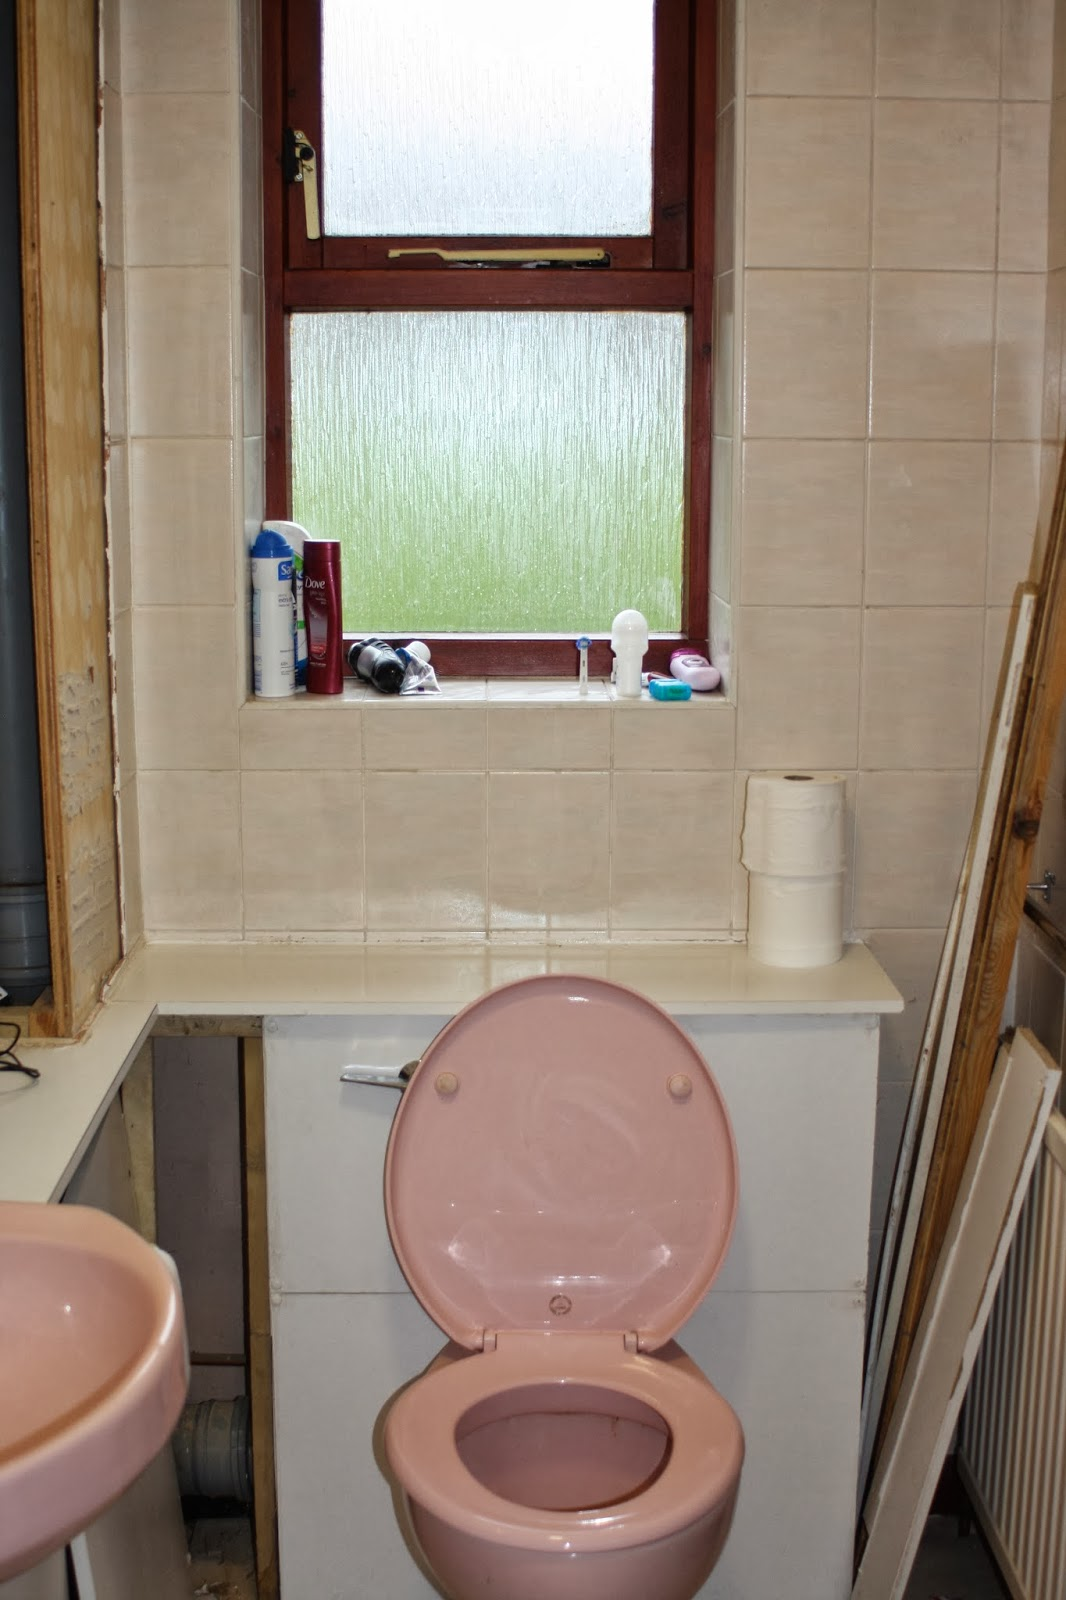 Toilet-bathroom-new-house-365